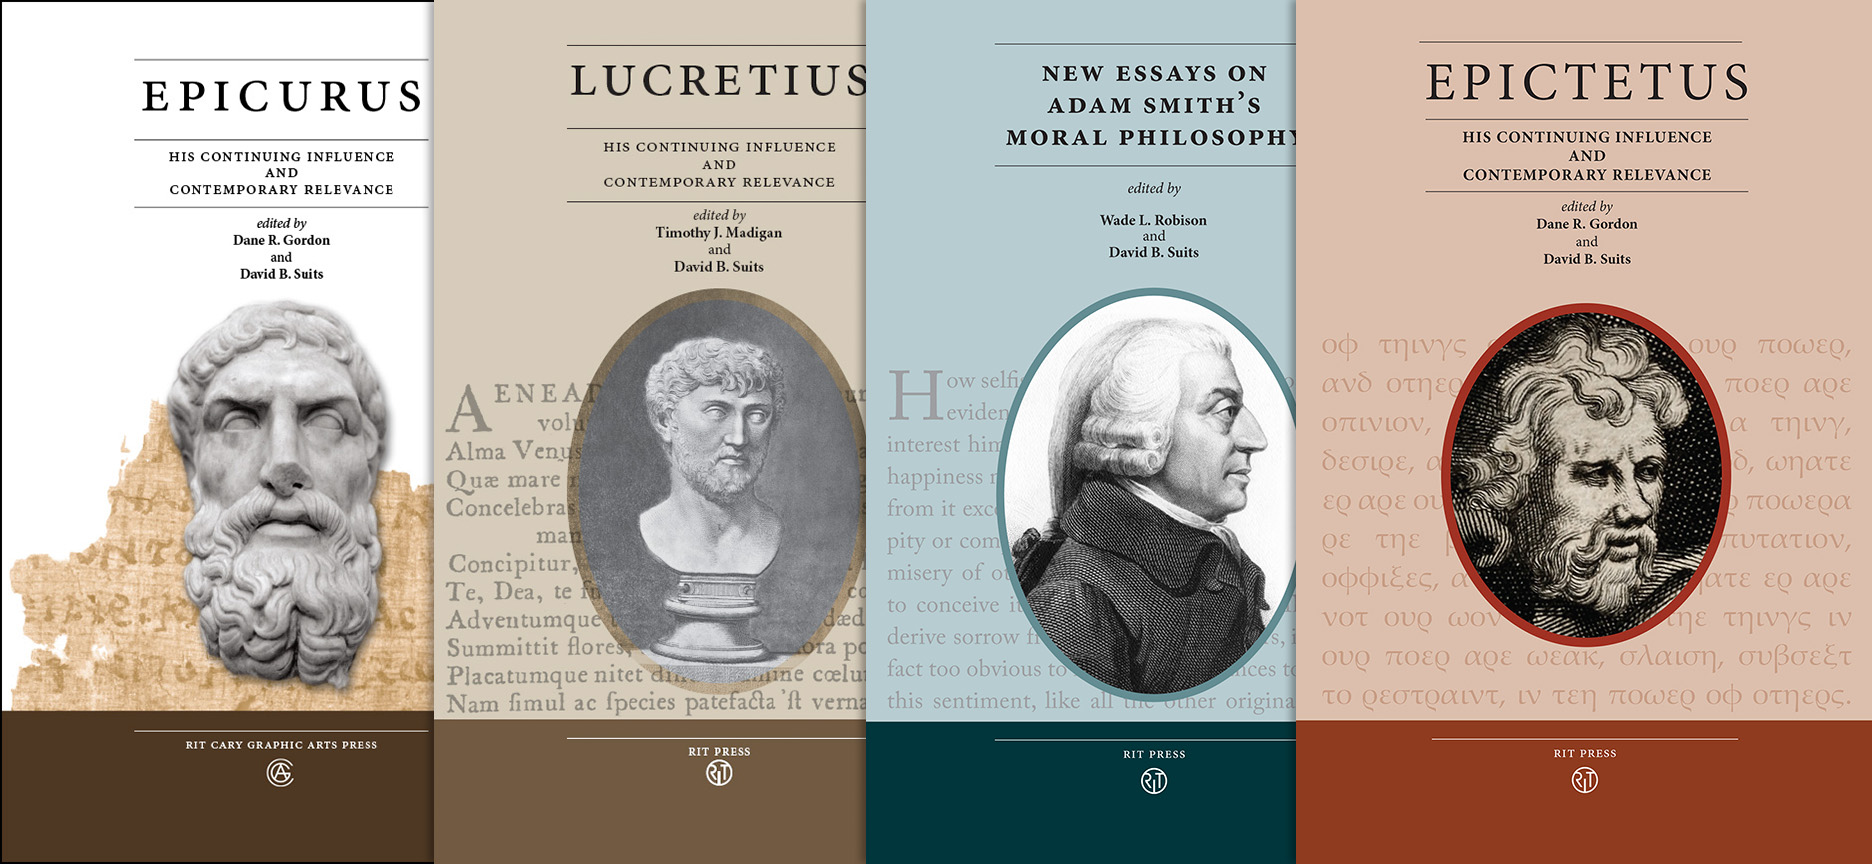 lucretius essay The full translations of de rerum natura by cyril bailey and hugh munro are now online please click here to go to our dedicated site for lucretius.